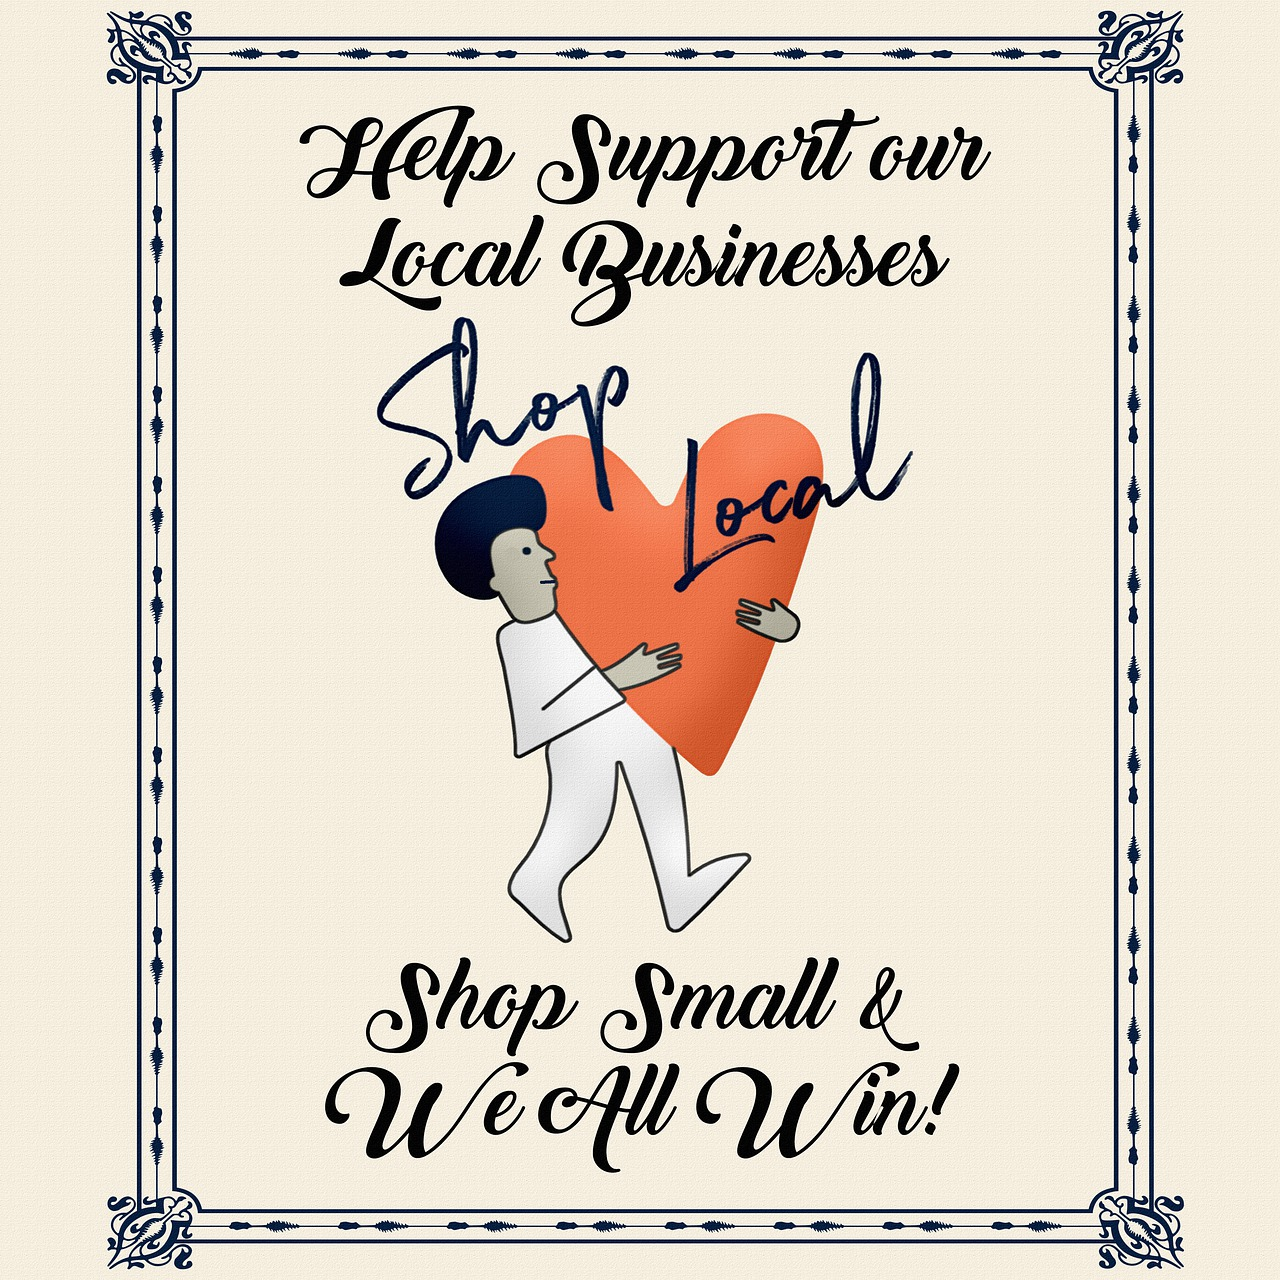 Poster Support Local Business - Free image on Pixabay